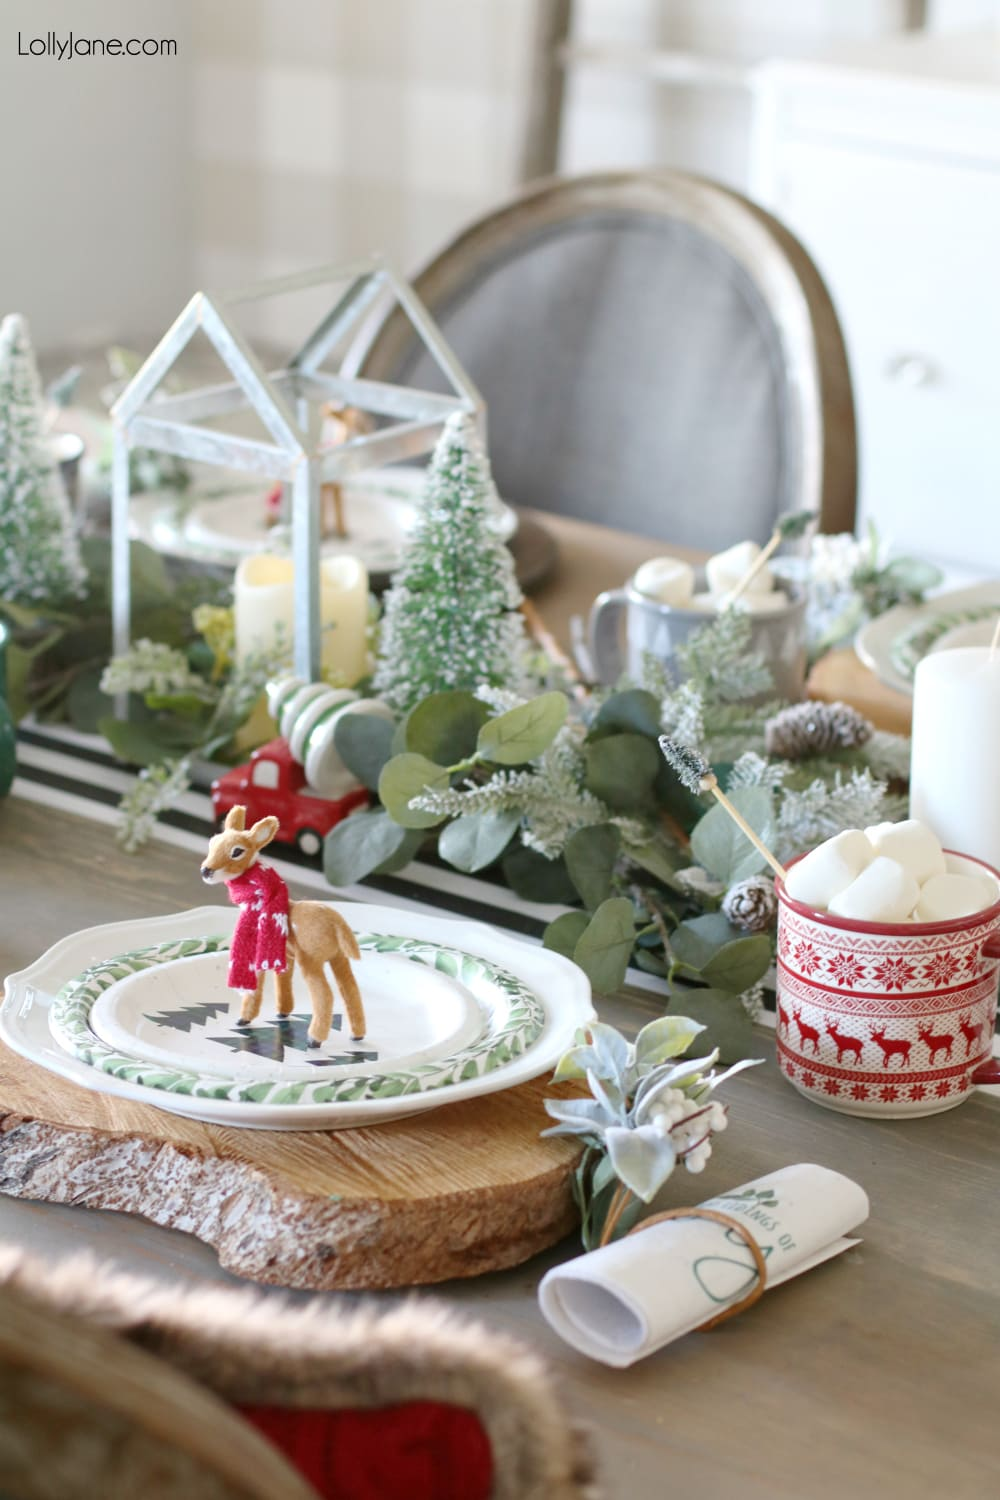 Cute and easy tablescape ideas for Christmas or wintertime! Shop your house and buy things (like these once-deer-ornaments turned plate topper!) that can be multi-purpose! Great tips! #christmas #christmastablescape #christmascenterpiece #centerpiece #wintertablescape #diy